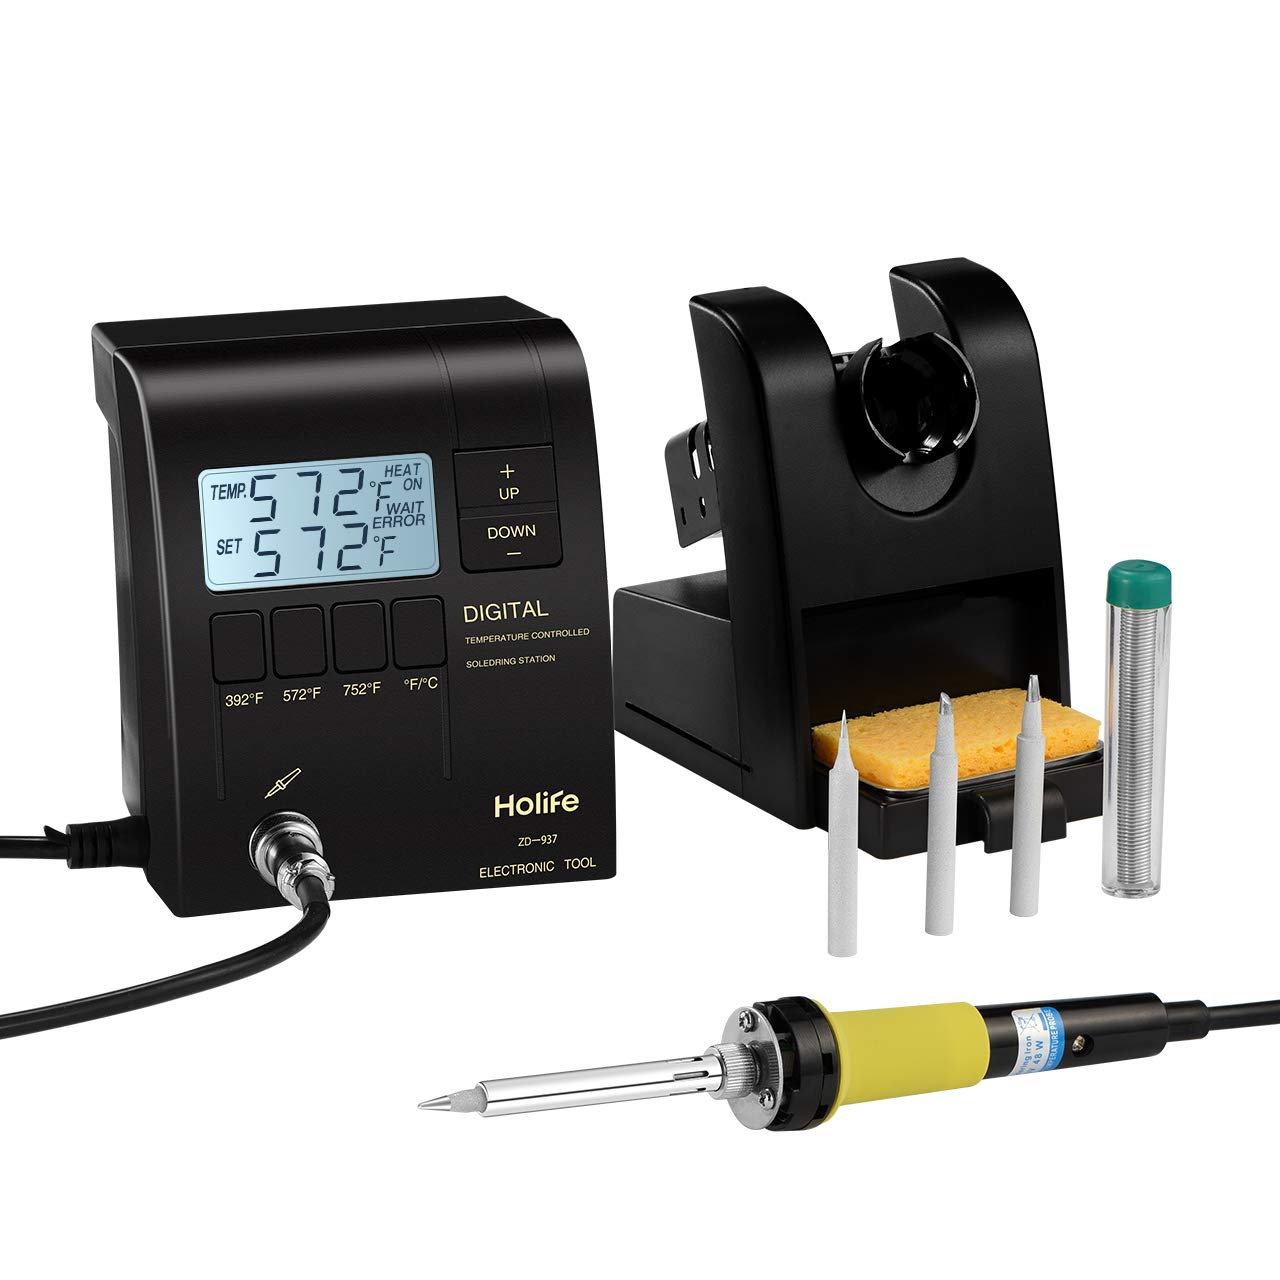 HoLife Digital Display Soldering Iron Station with ON/OFF Switch, Adjustable Temperature from 302